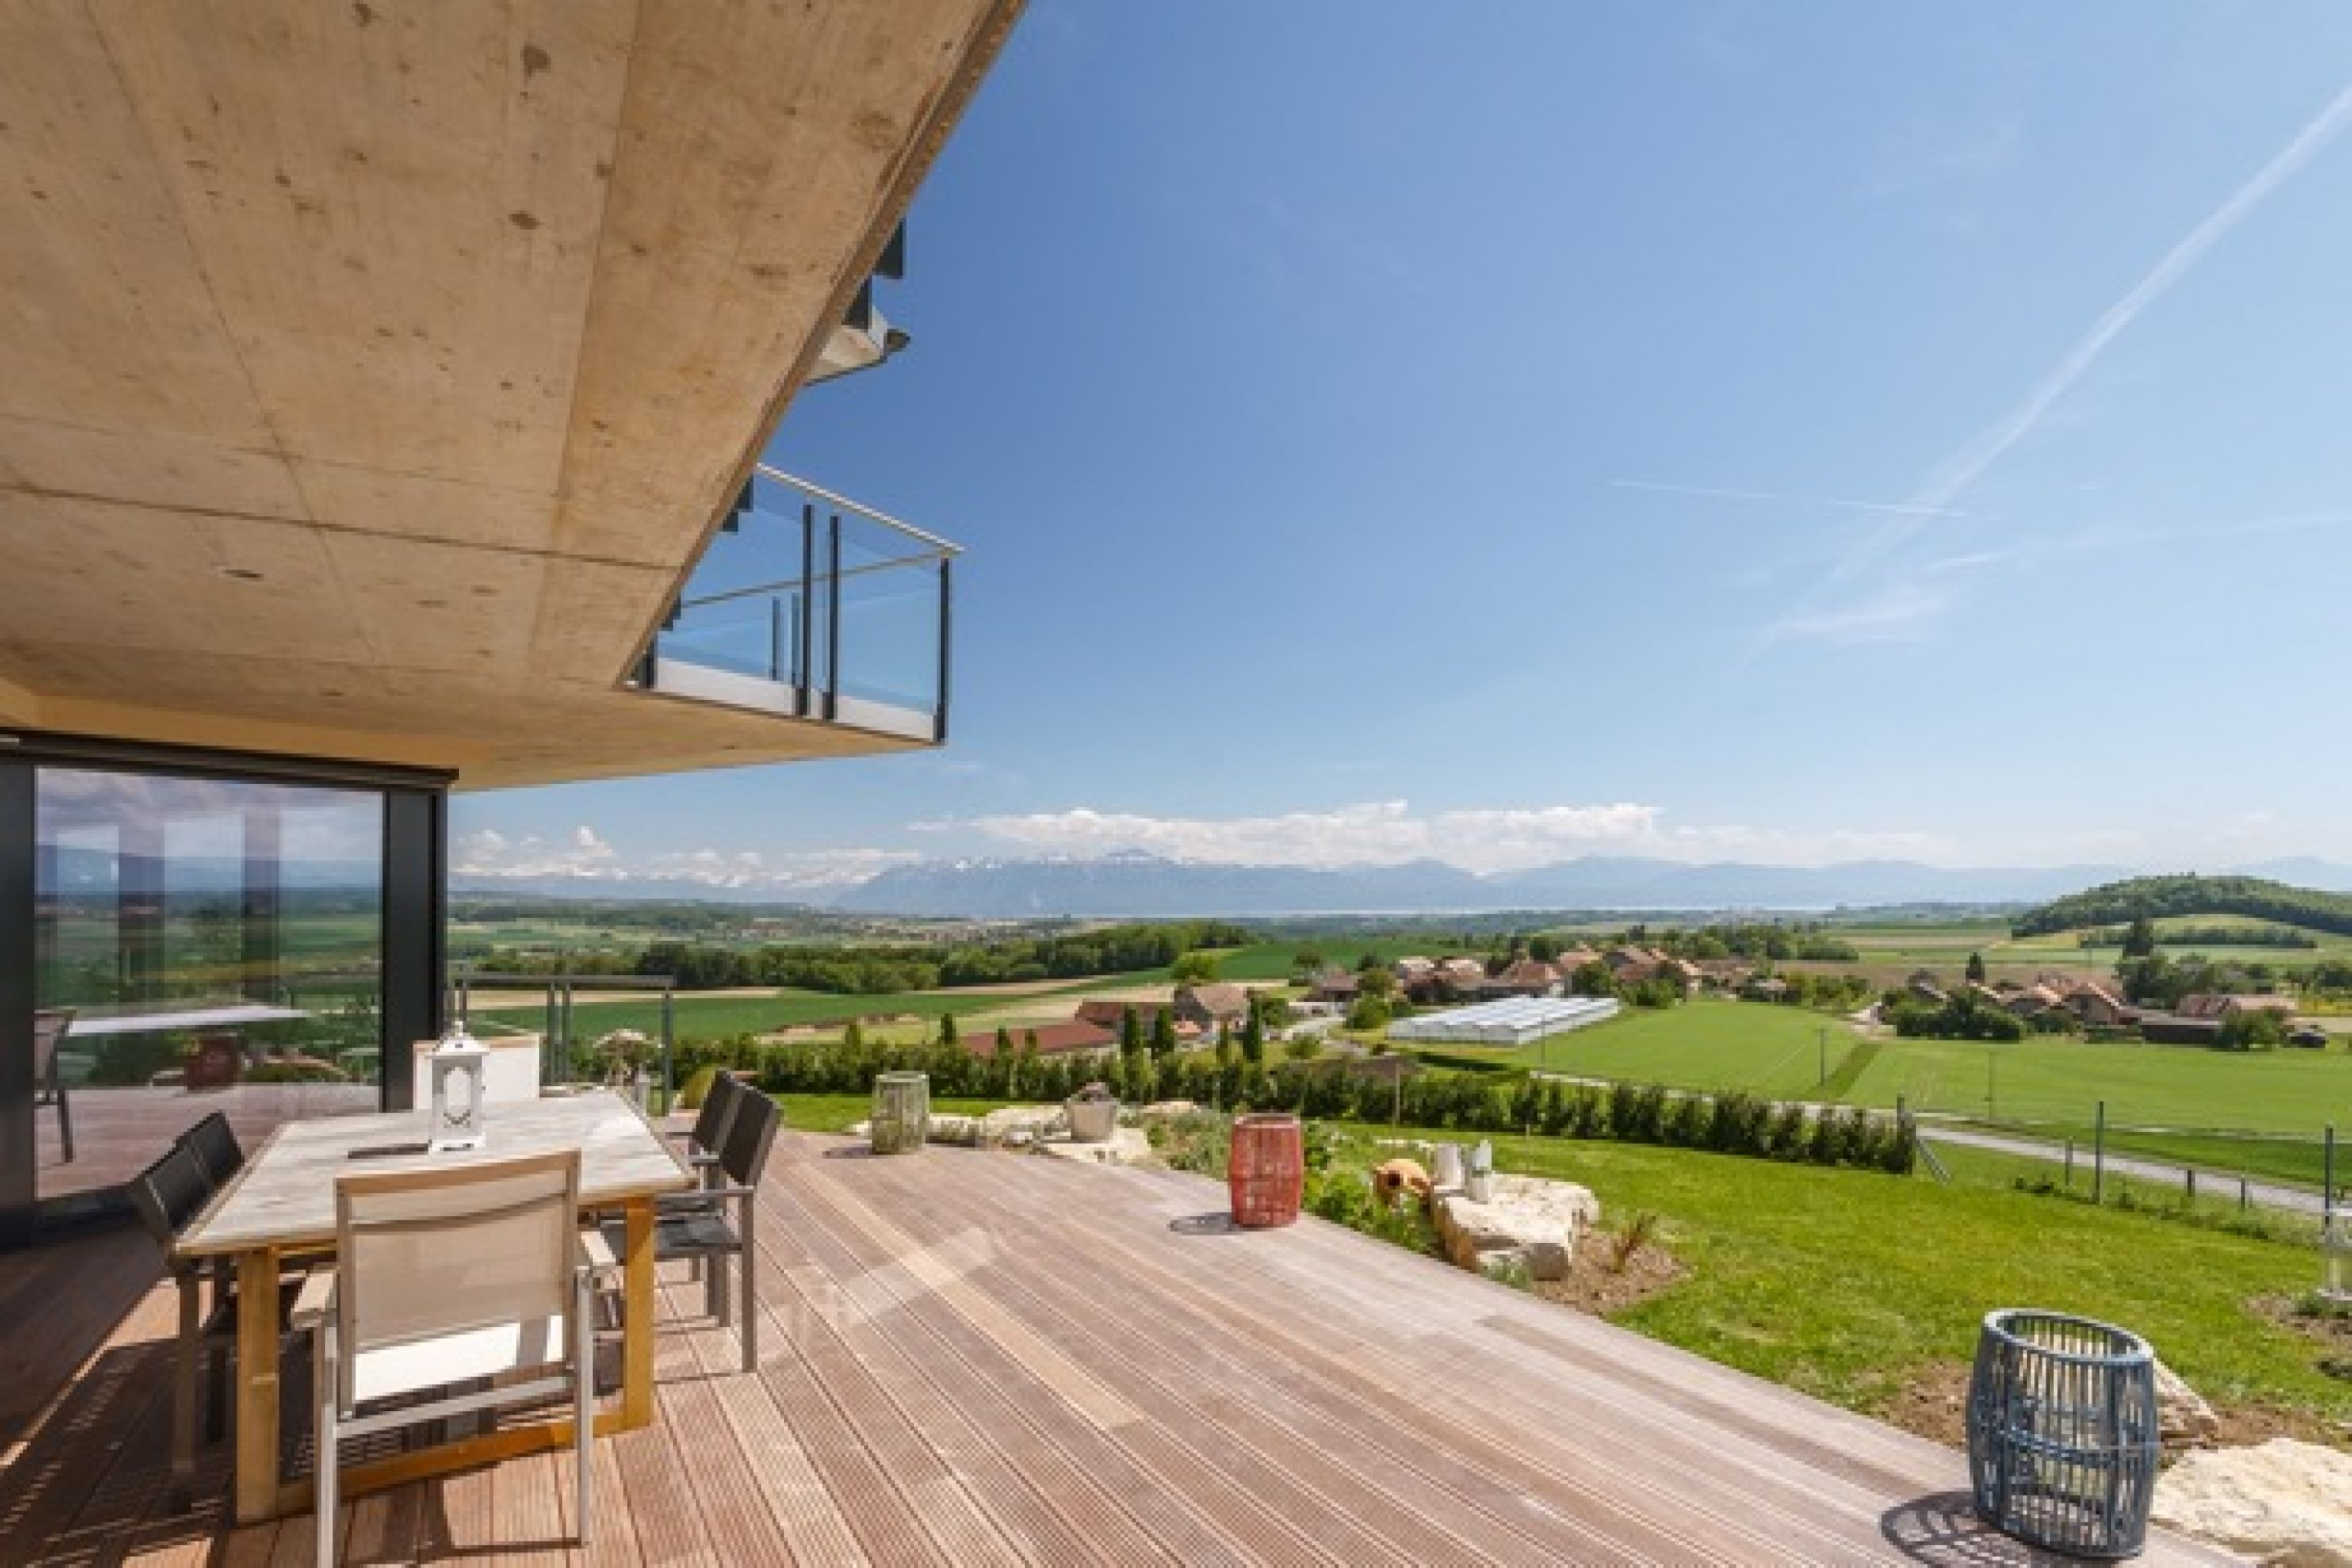 STUNNING ARCHITECT-BUILT VILLA WITH 10 ROOMS AND PANORAMIC VIEWS